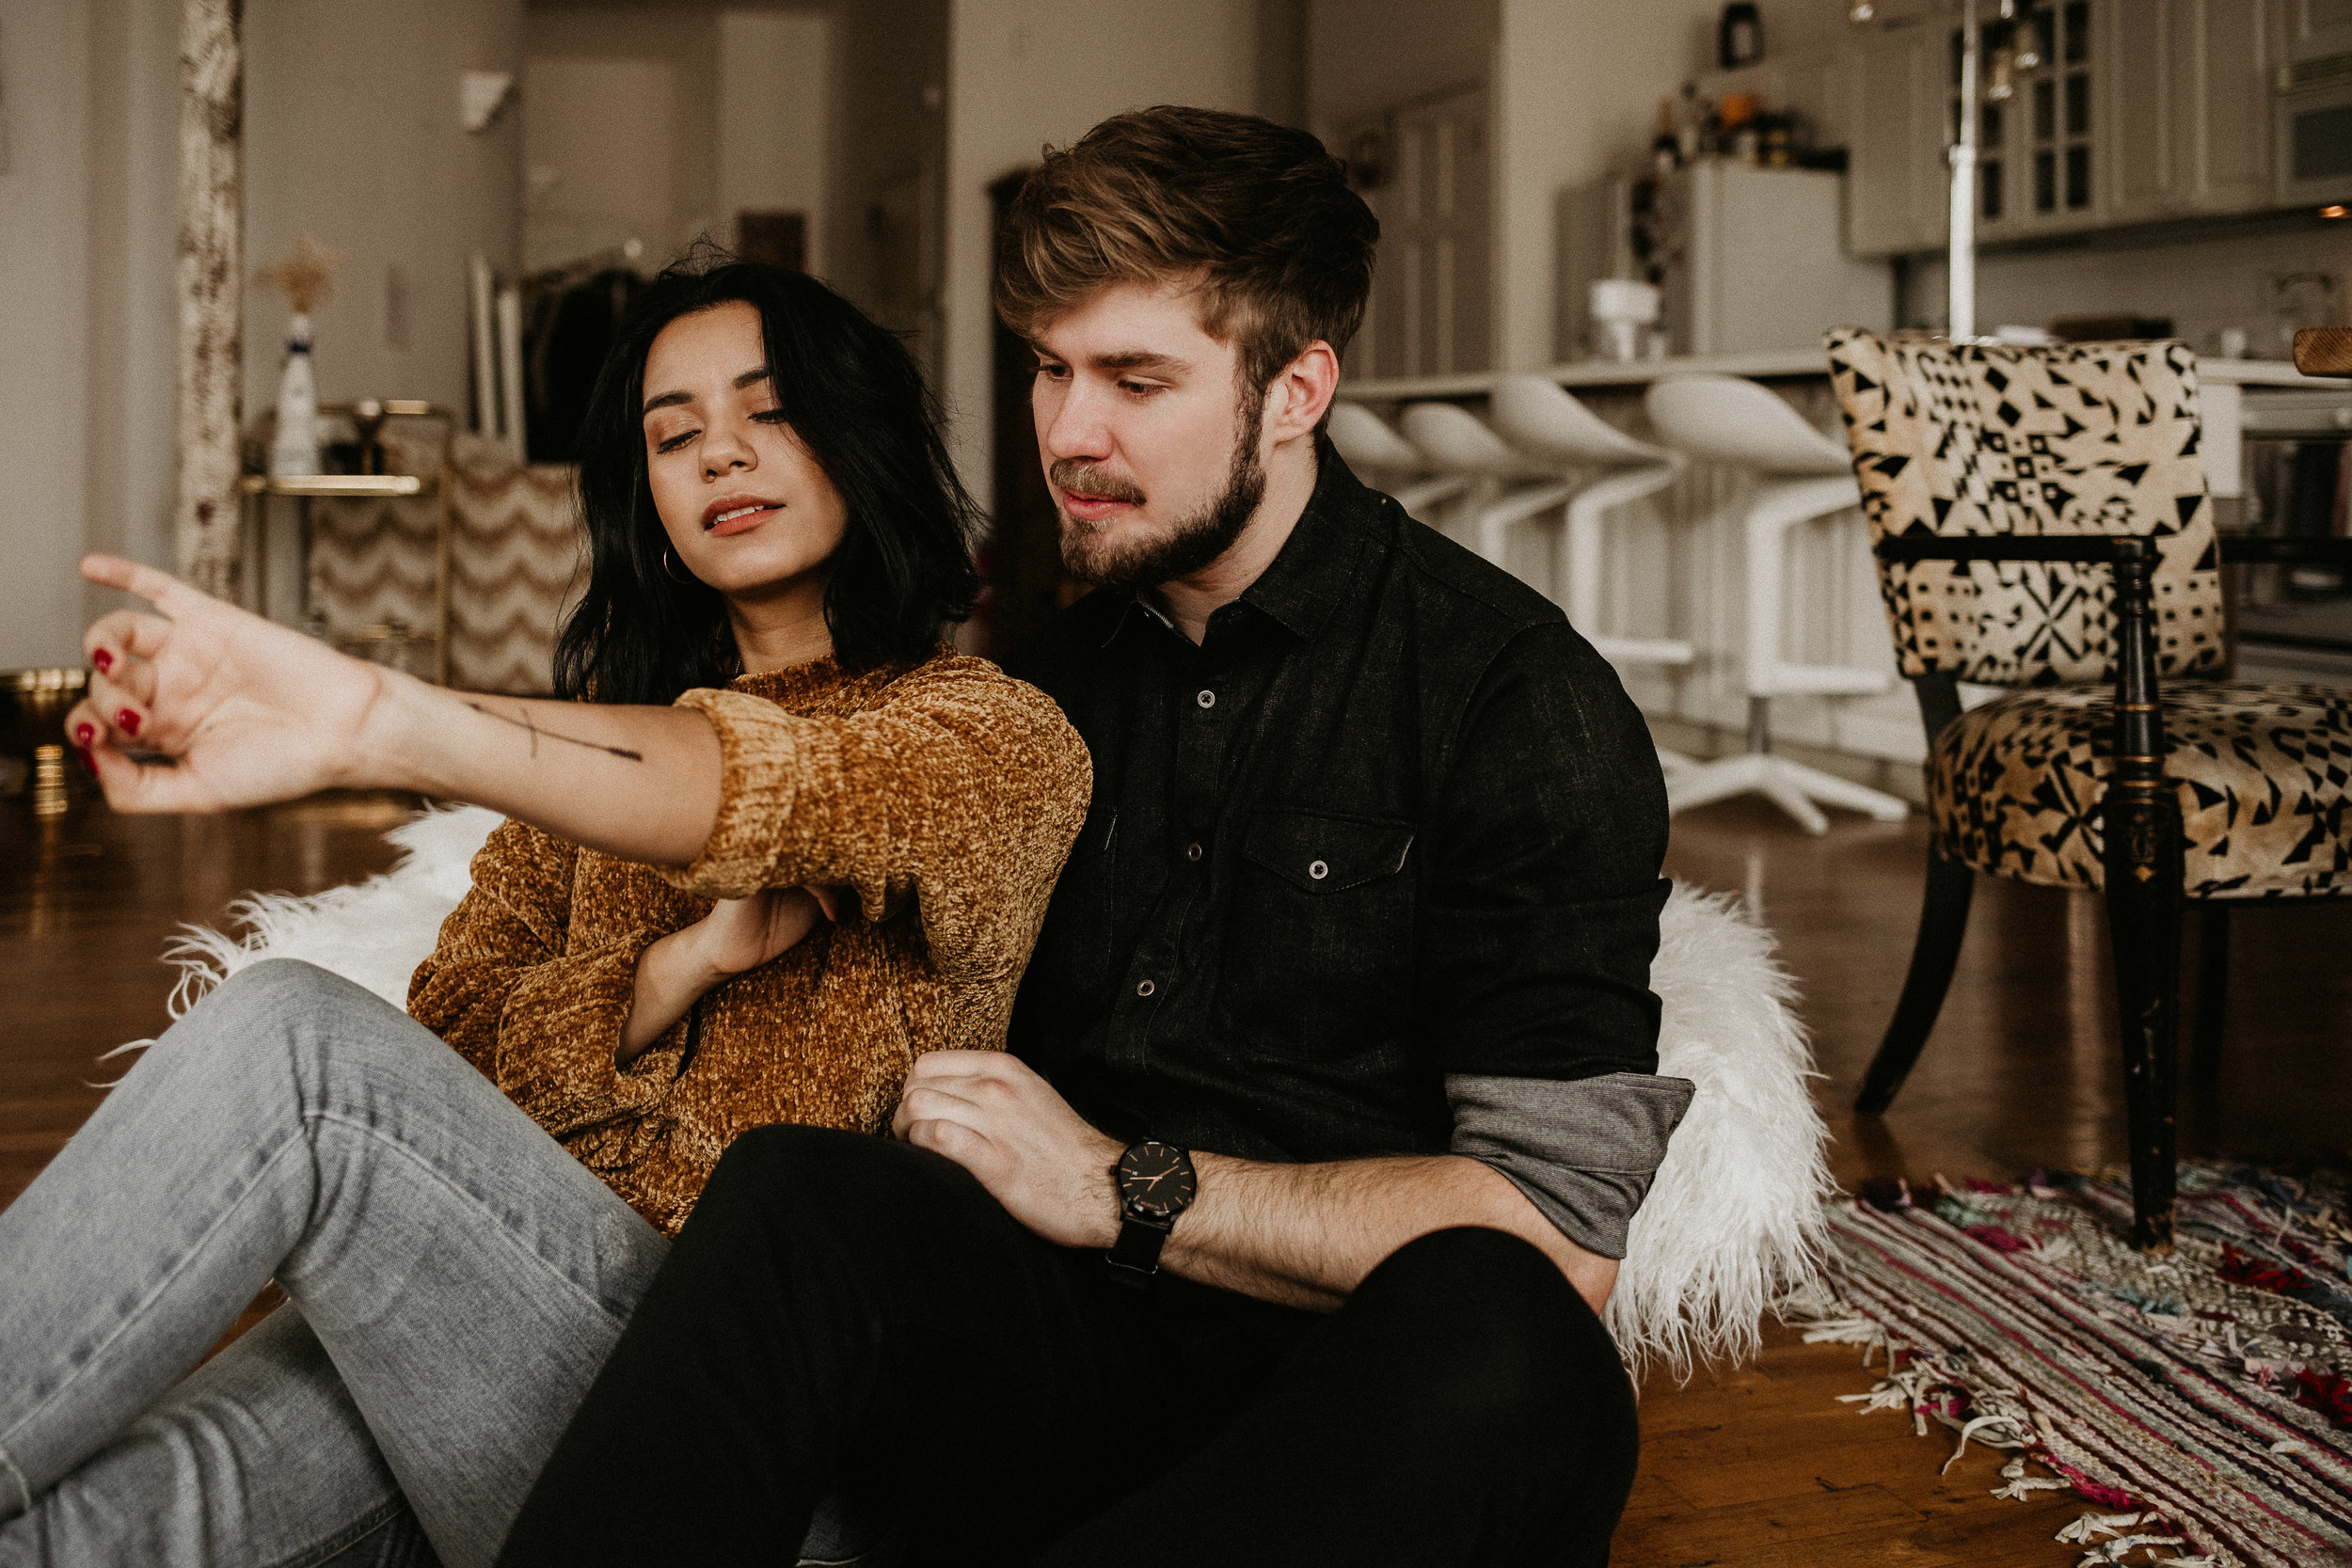 Couple In-Home Session 10.jpg